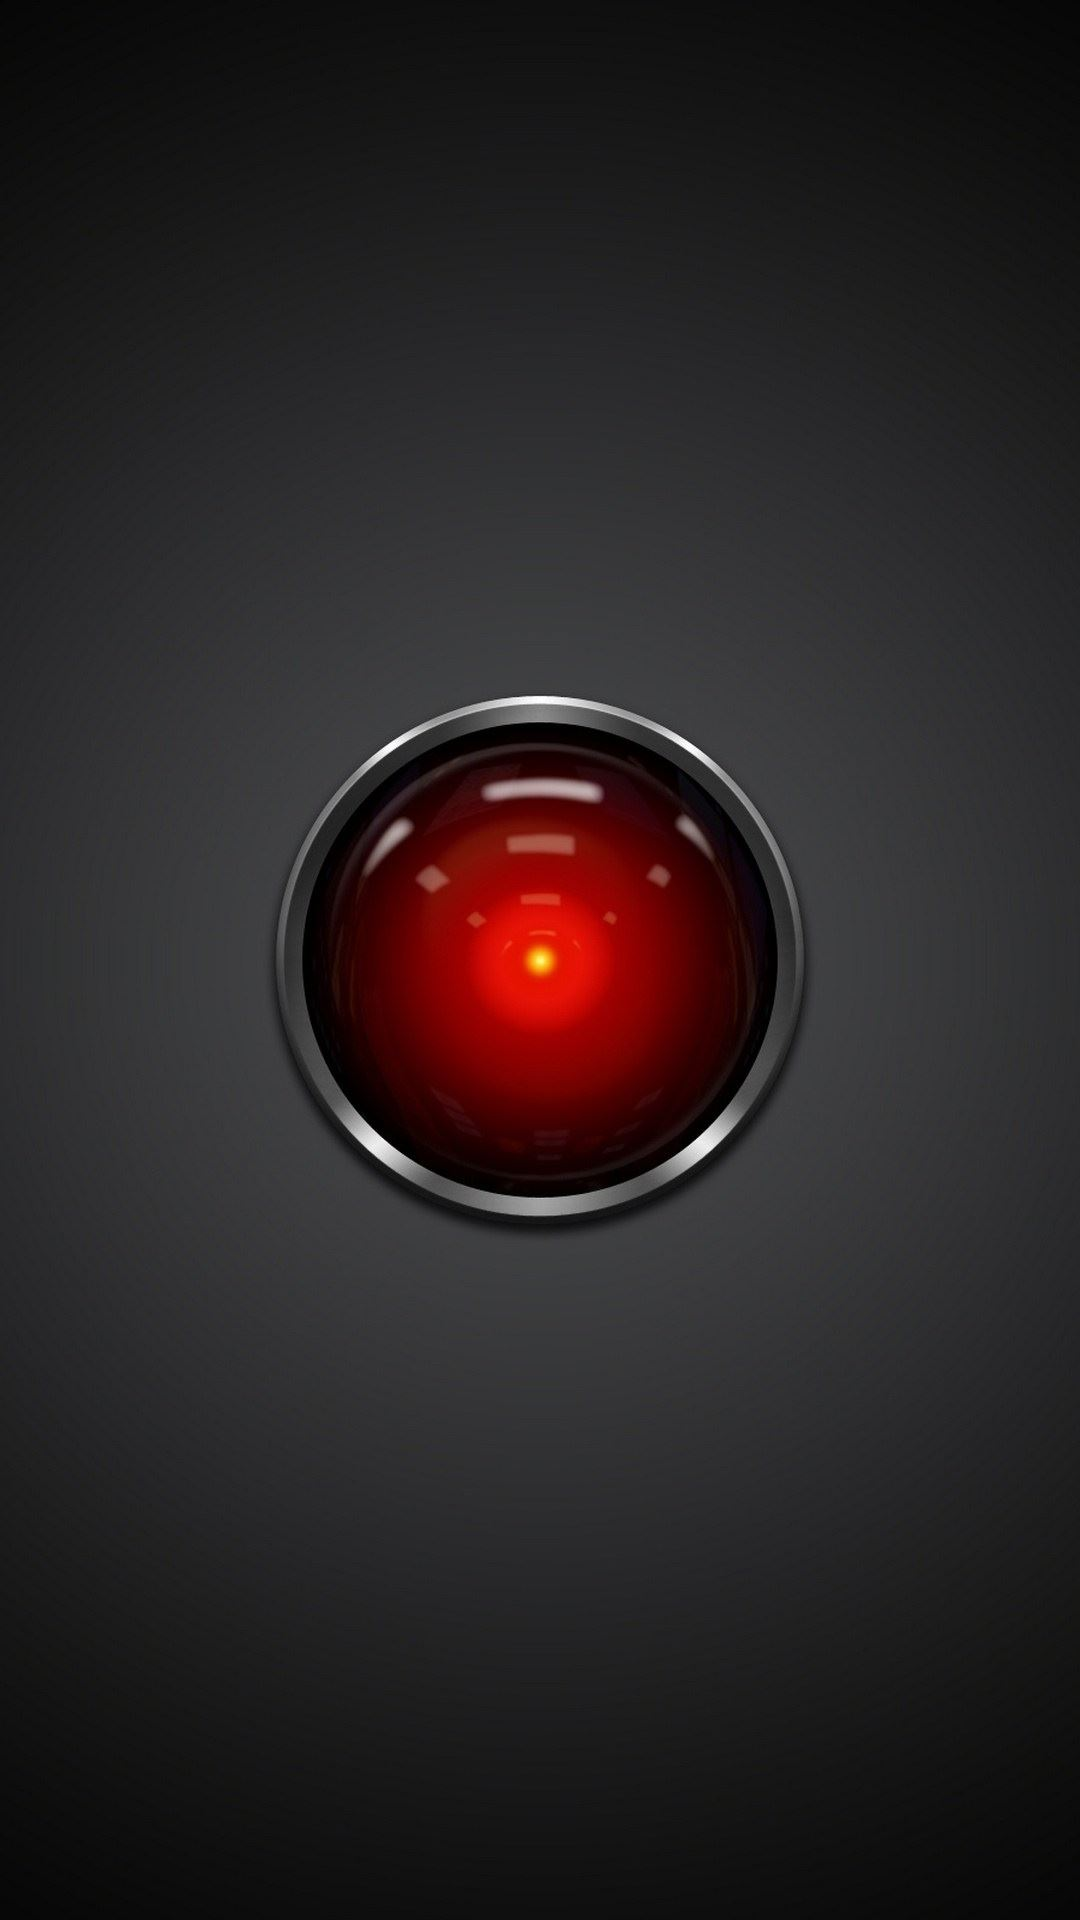 42 Hal 9000 Hd Wallpaper On Wallpapersafari